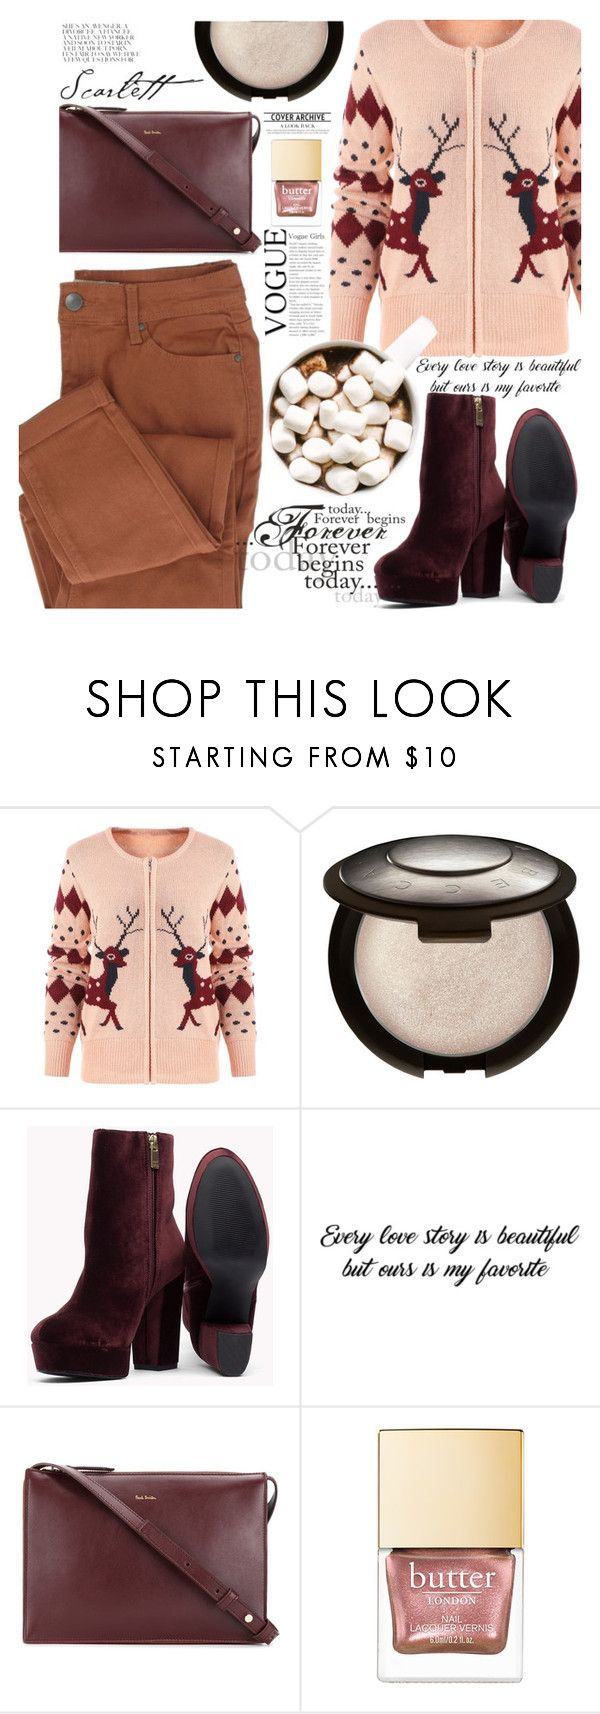 """""""276"""" by erohina-d ❤ liked on Polyvore featuring Paul Smith, Christmas, Pink, gamiss, Christmasitem and Christmasdeer"""